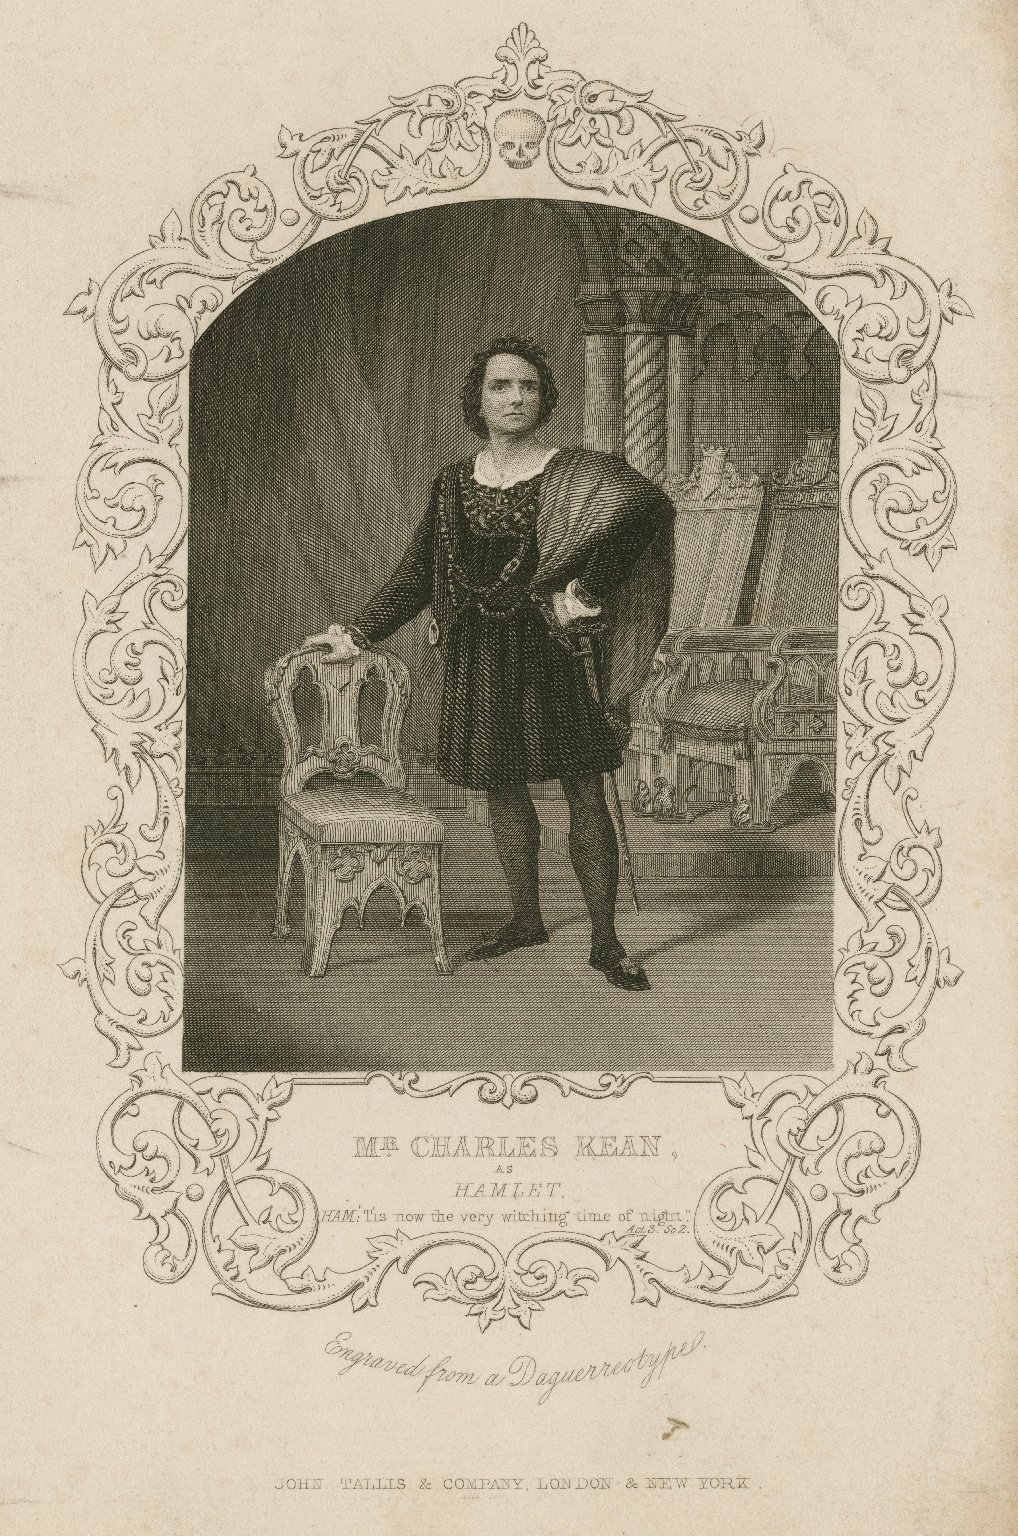 <b>Hamlet</b>     	</br>Actor Charles Kean, son of Edmund Kean, as Hamlet, mid-19th century</br><br/><b>Source: </b><i>Mr. Charles Kean as Hamlet (Call number: ART File K24 no.2 copy 1), [mid-19th century], Folger Digital Image Collection, University of Cincinnati Libraries Digital Collections, University of Cincinnati, http://digproj.libraries.uc.edu:8180/luna/servlet/s/rl150m</i>